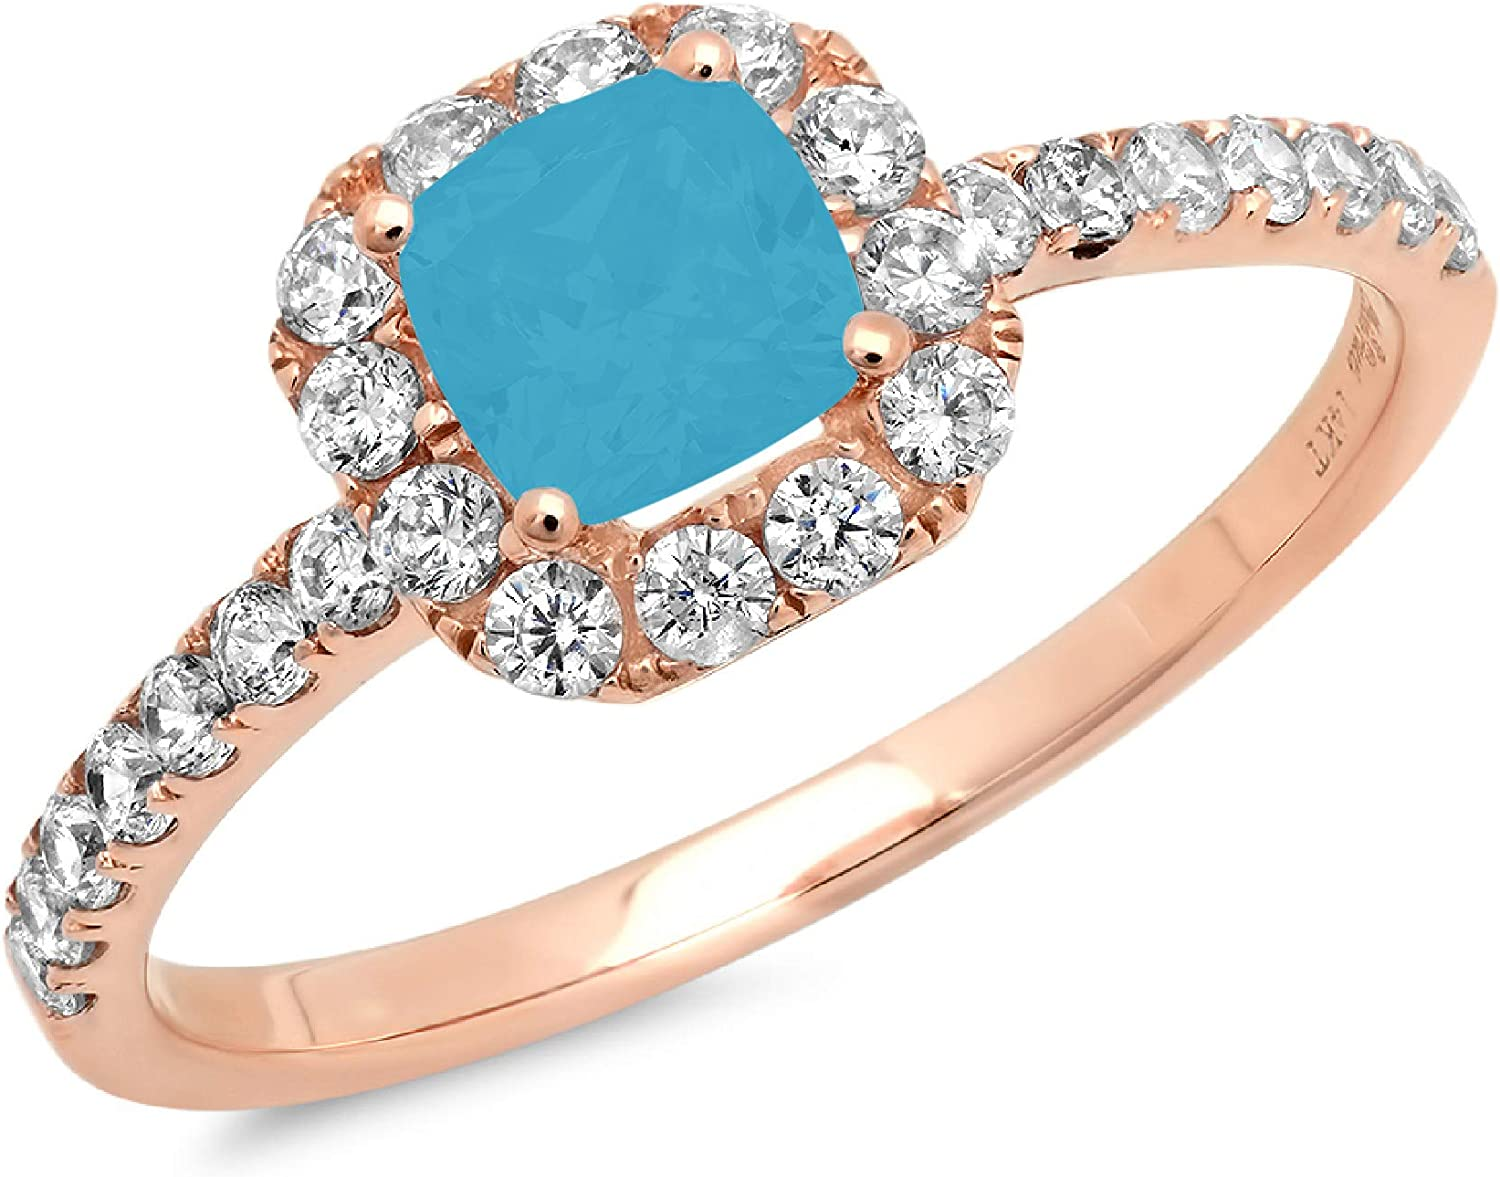 1.34ct Brilliant Princess Cut Solitaire with accent Flawless Ideal VVS1 Simulated Blue Turquoise CZ Engagement Promise Statement Anniversary Bridal Wedding Designer Ring 14k Rose Gold